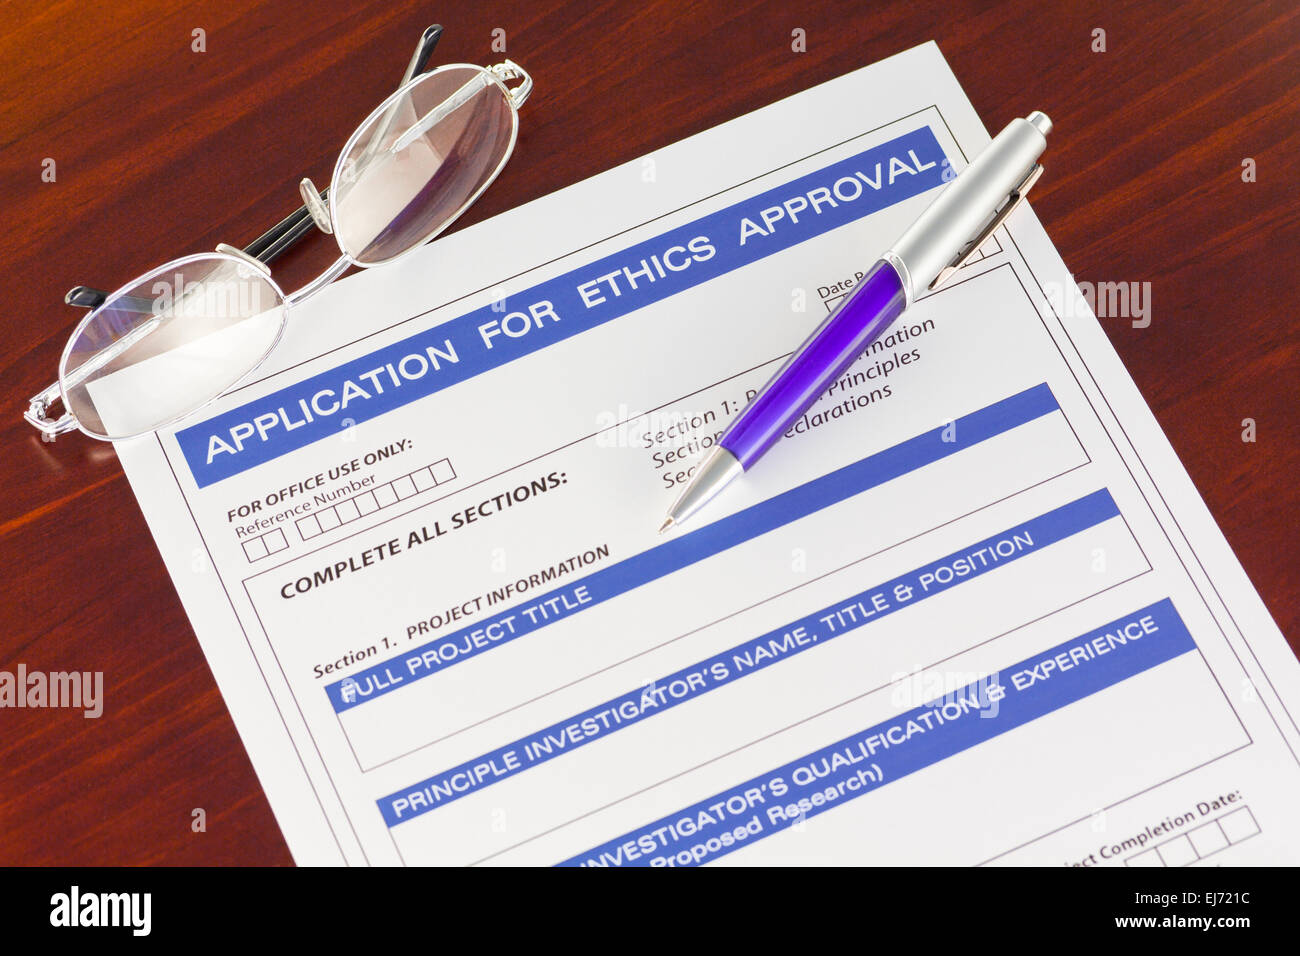 Application for Ethics Approval Form on Desk - Stock Image